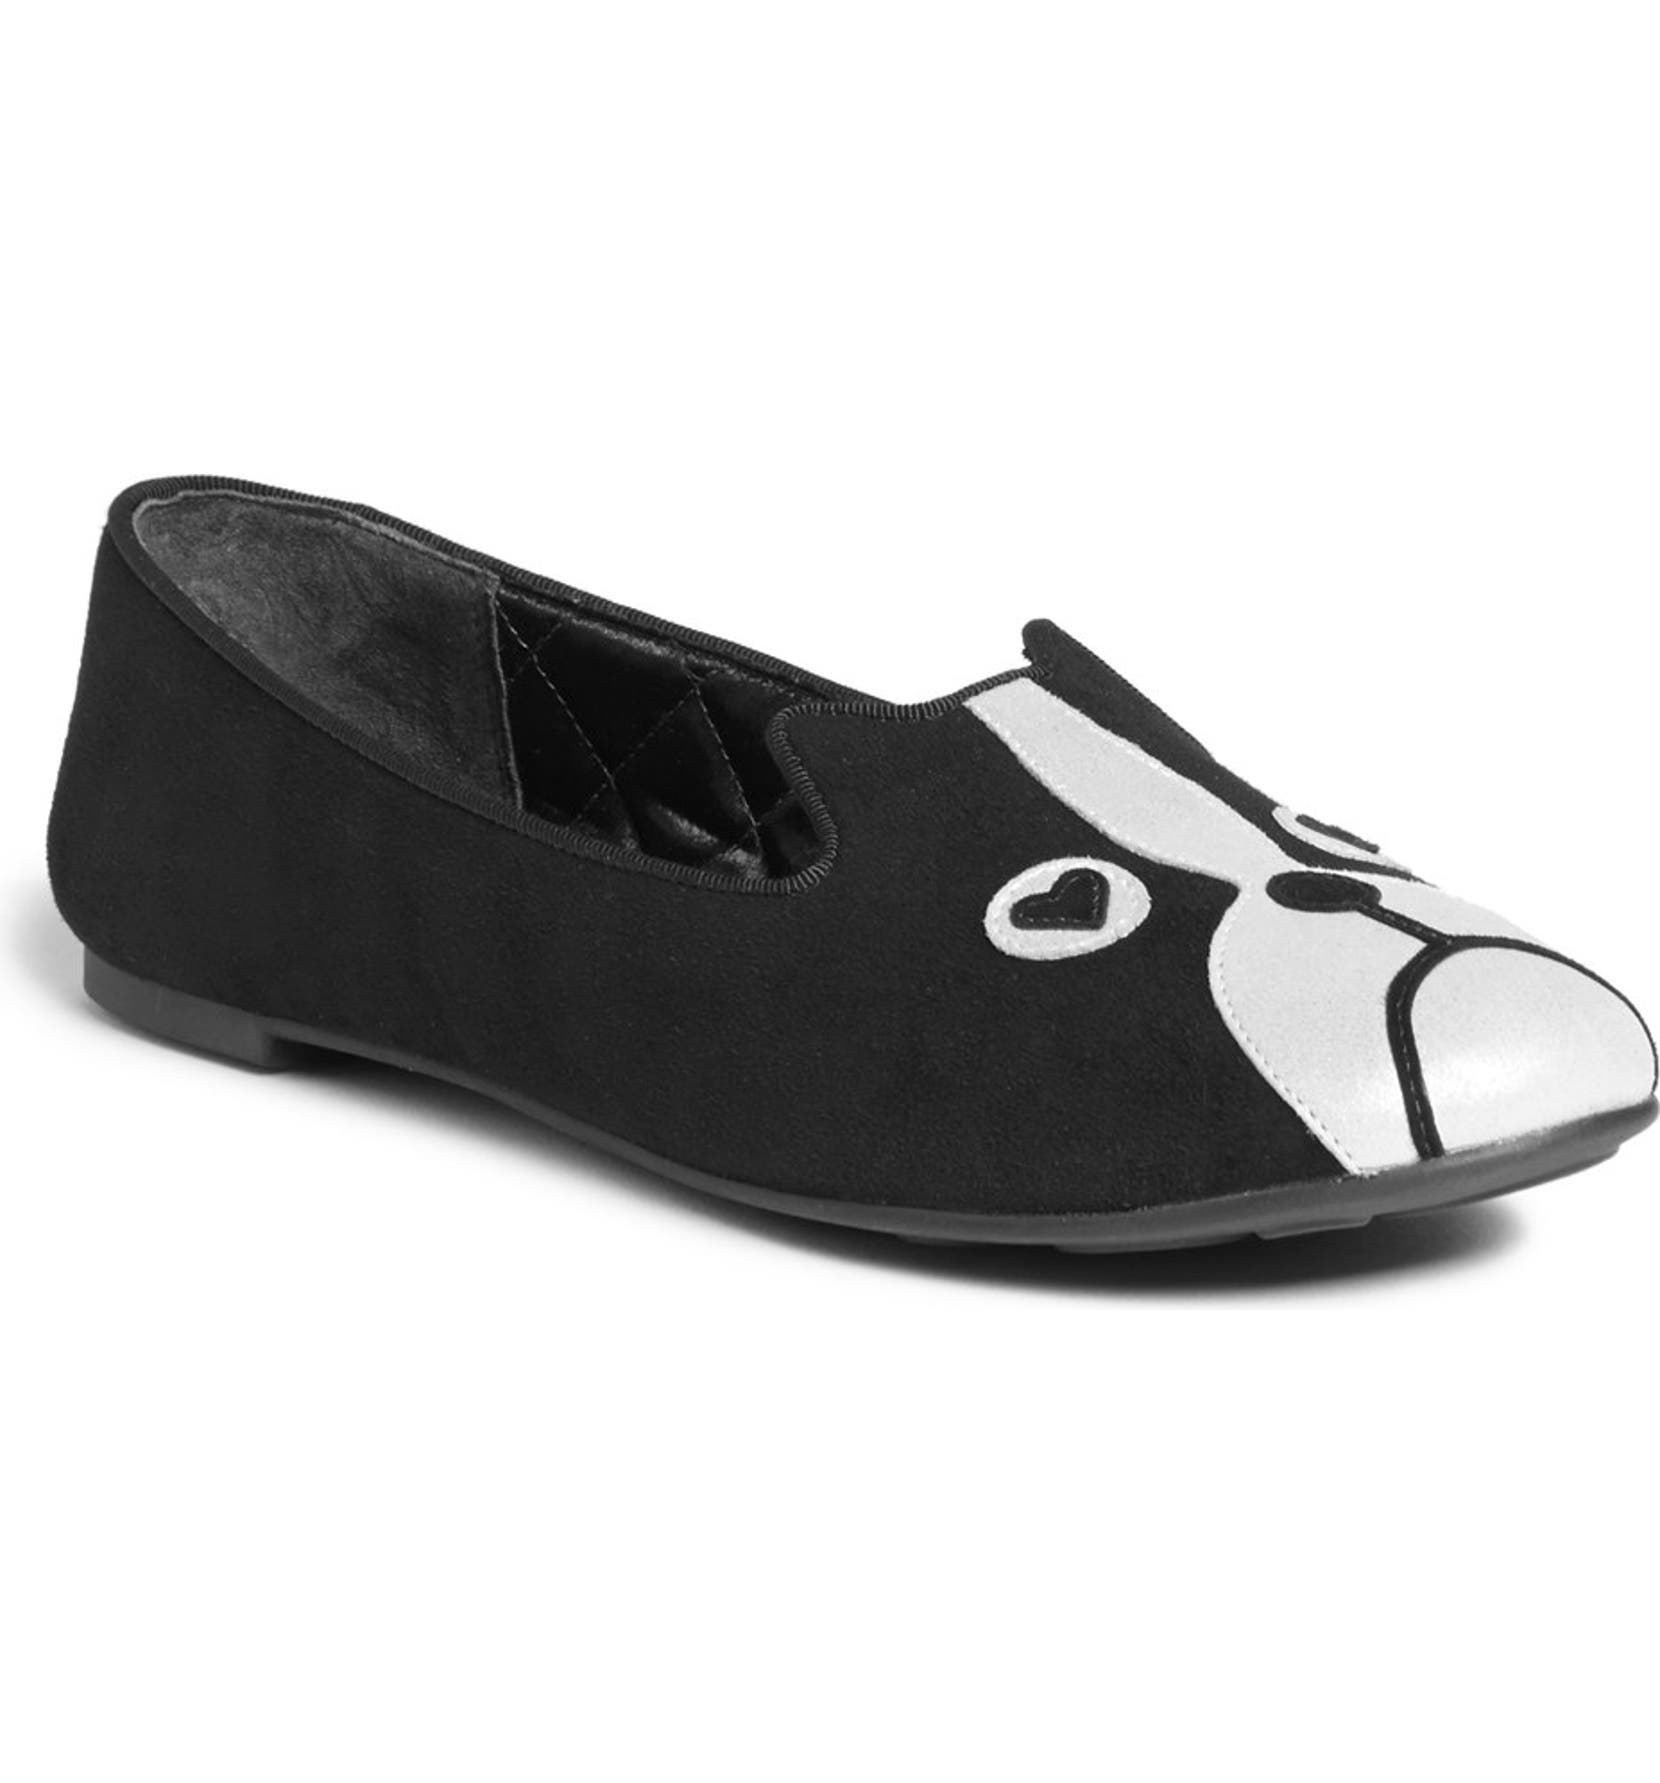 7bea30dcf8e MARC BY MARC JACOBS Flat